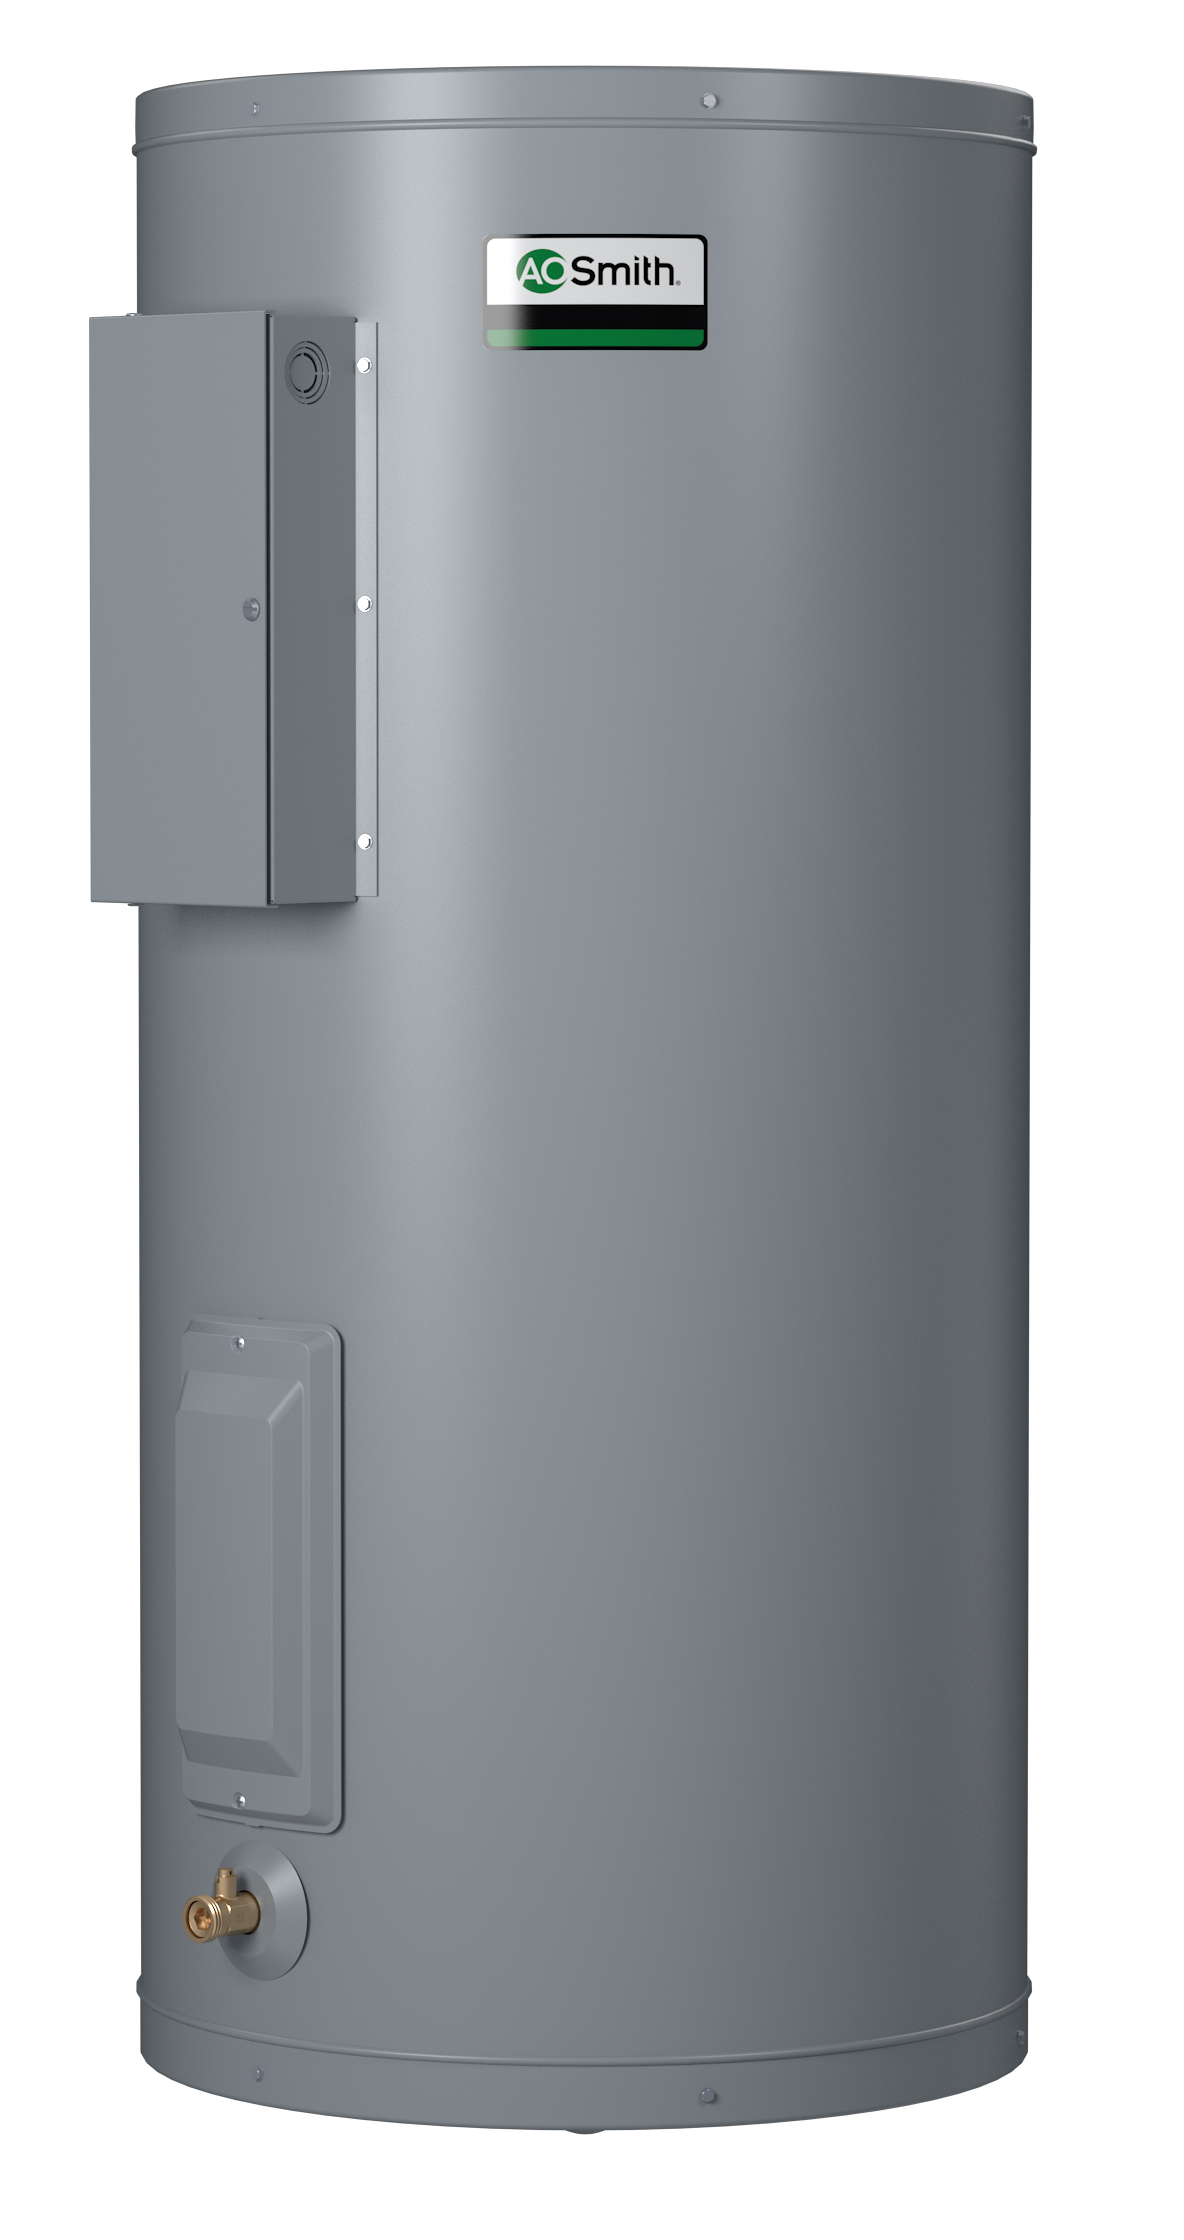 AO SMITH DEN-120D: 119 GALLONS, 1.5KW, 120 VOLT, 1 PHASE, (2-1500 WATT ELEMENTS, NON-SIMULTANEOUS WIRING), DURA-POWER, LIGHT DUTY COMMERCIAL ELECTRIC WATER HEATER